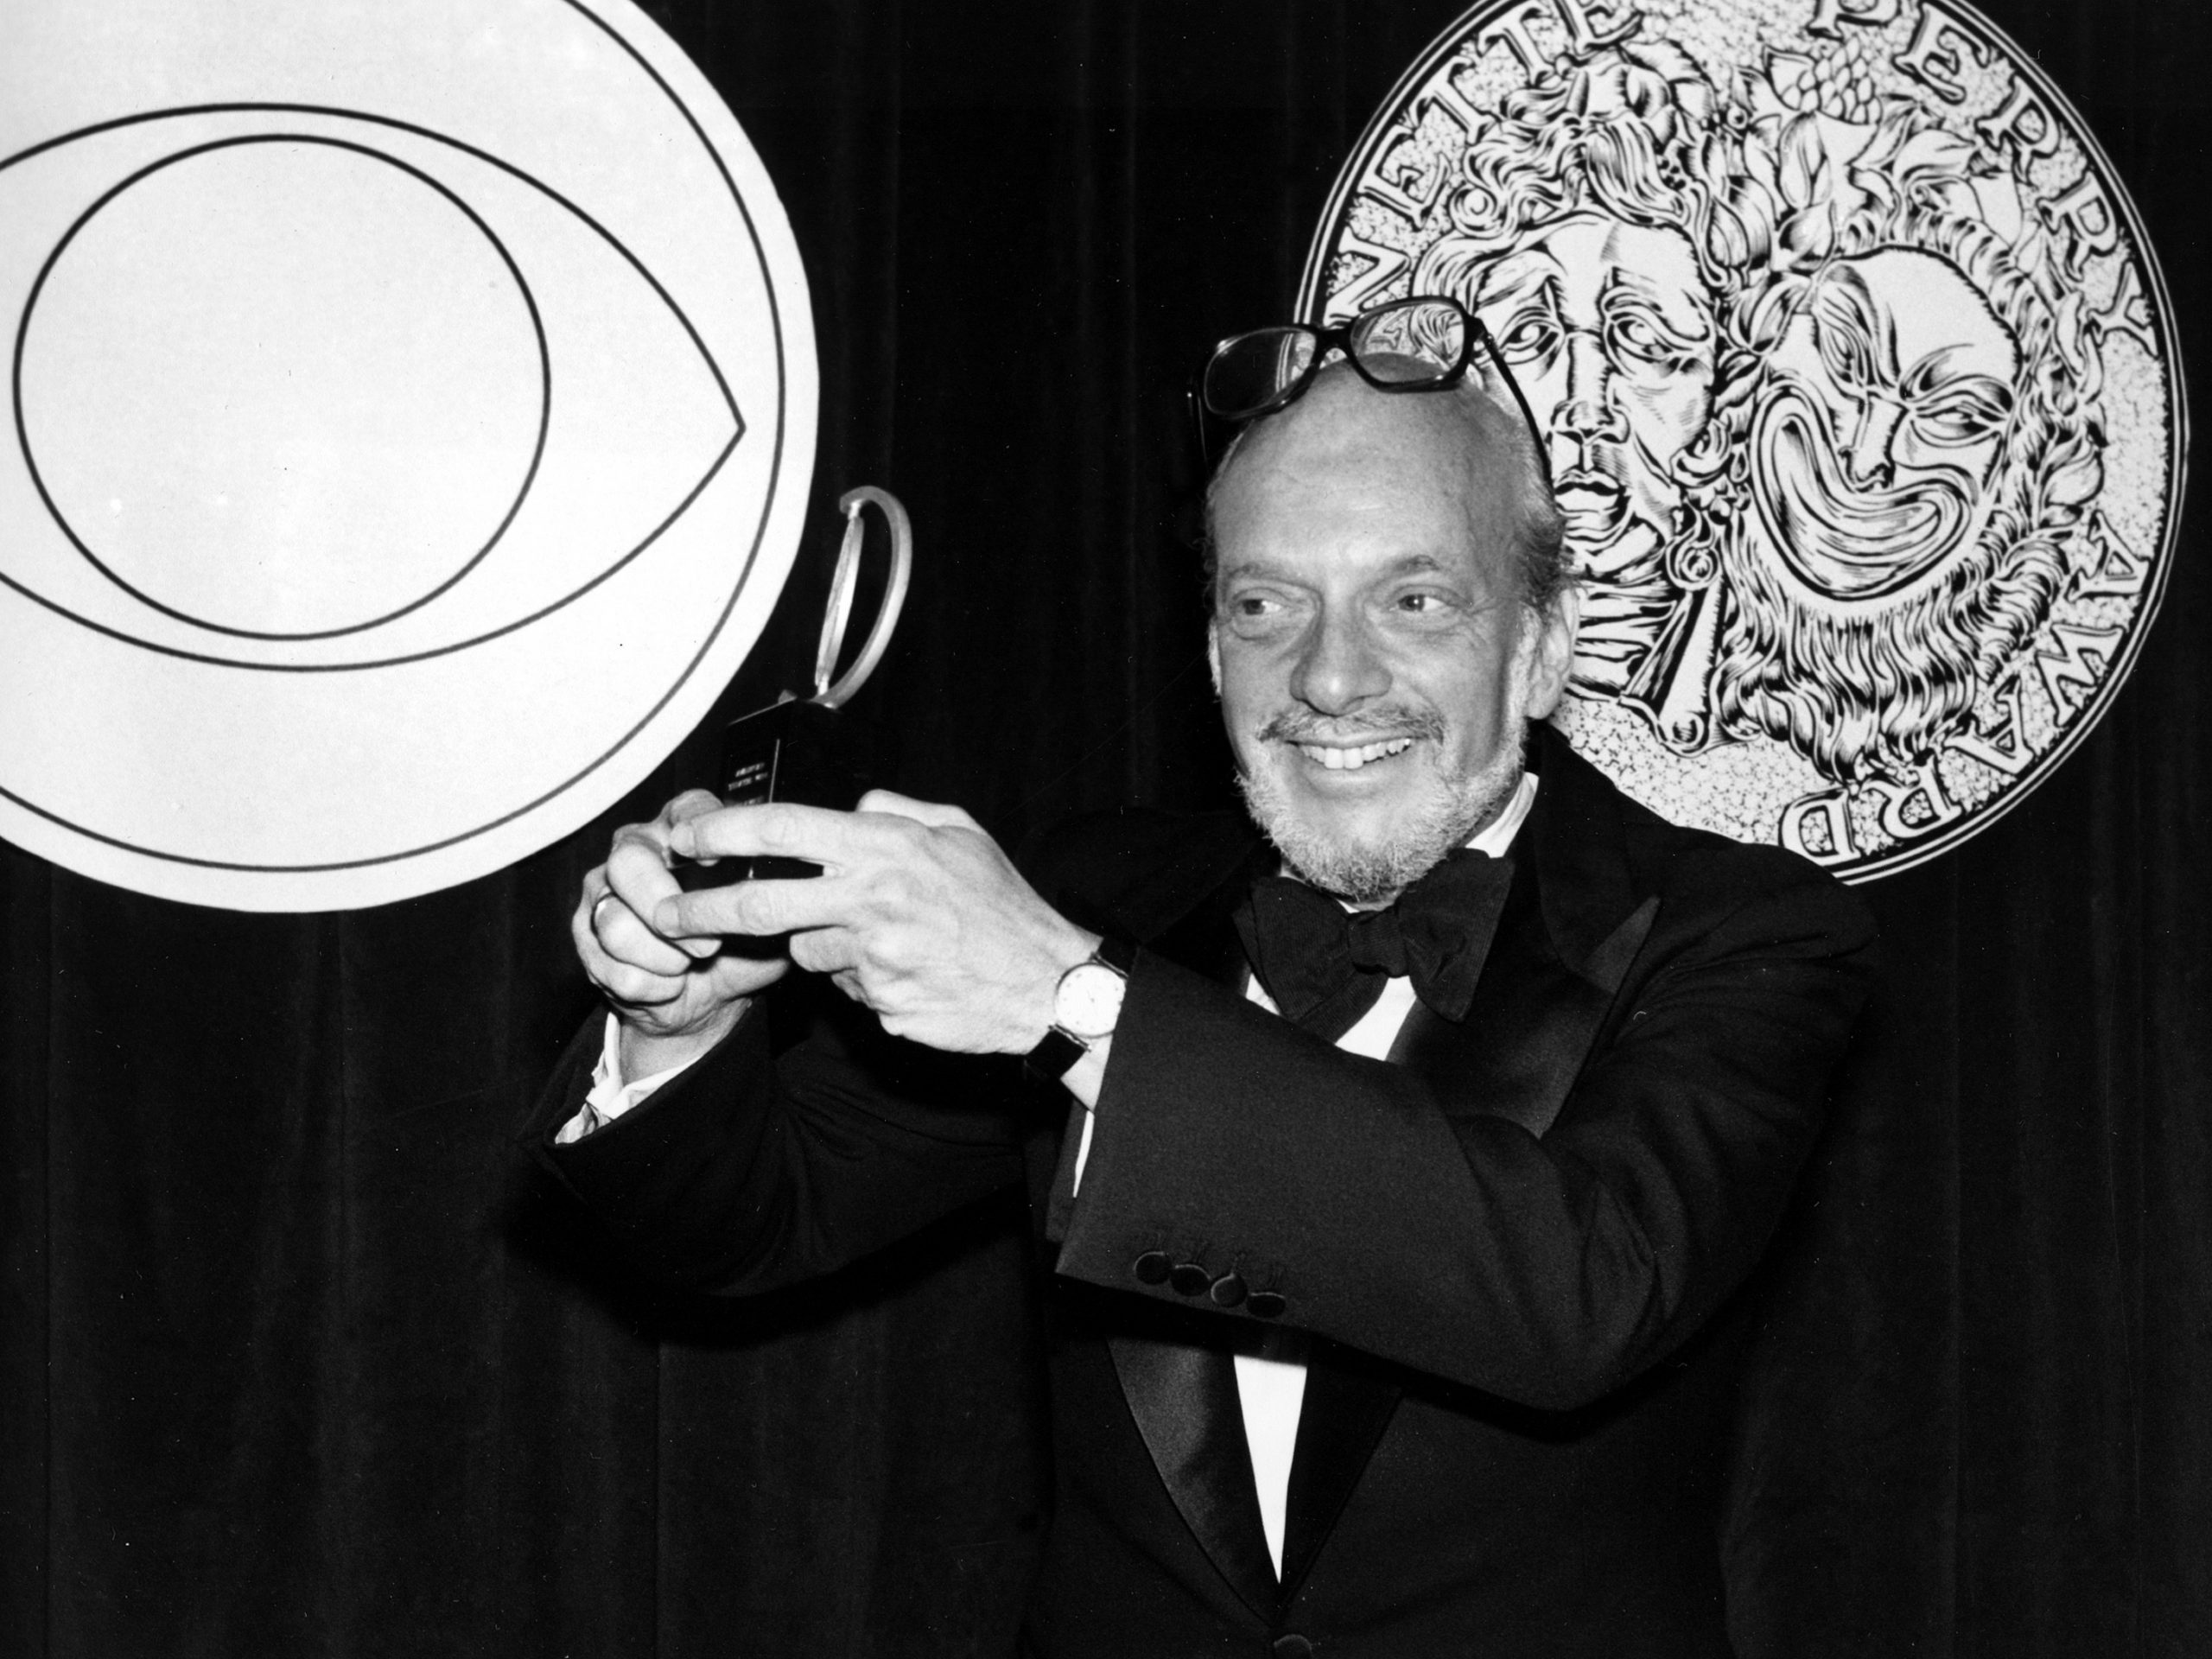 Harold Prince poses with his Tony Award for best direction of a musical in 1980. He earned the honor for his work on Evita.